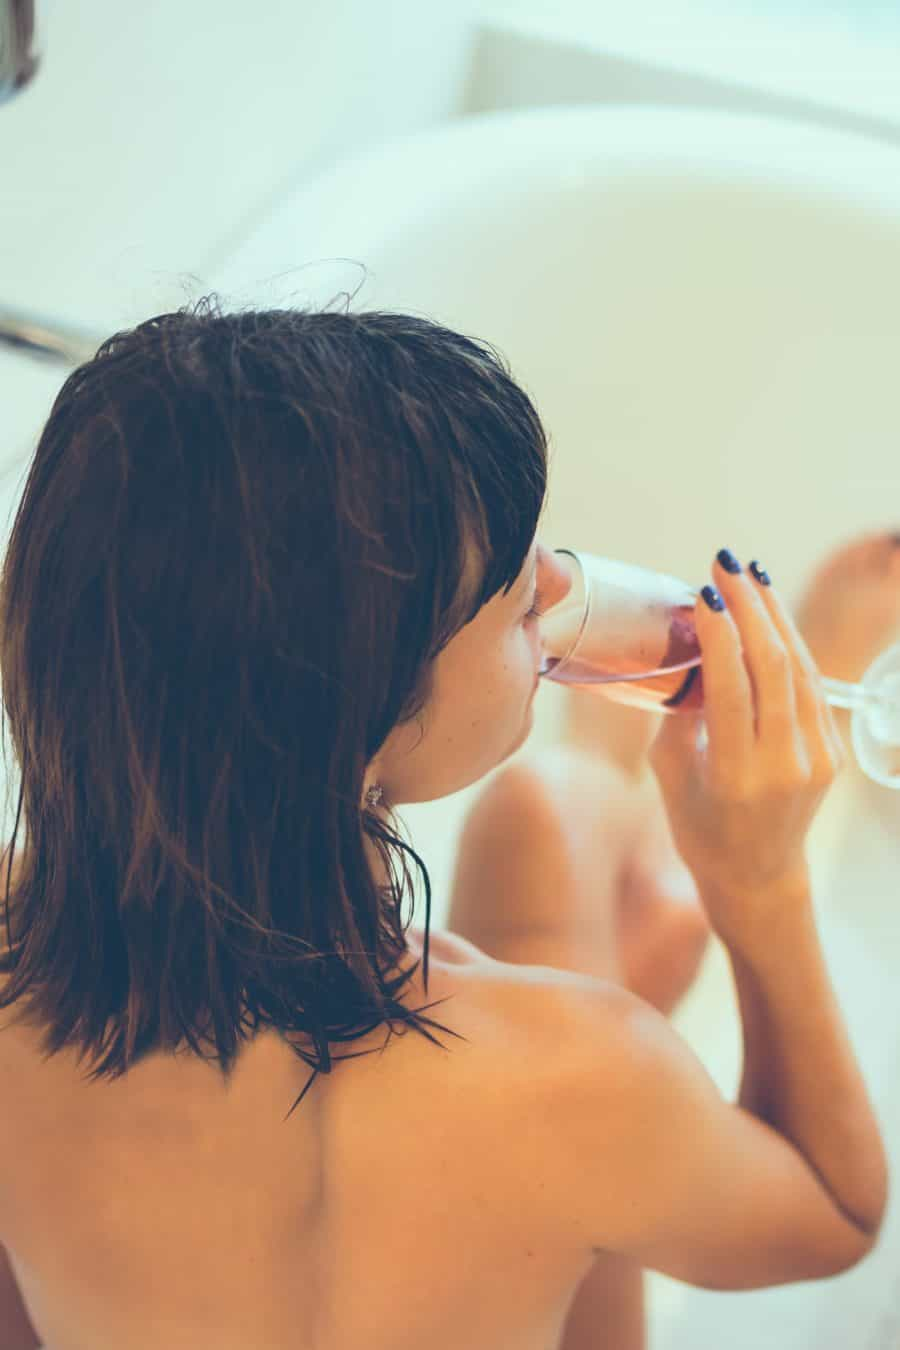 Image of young attractive women with champagne glass photo by Artem Bali